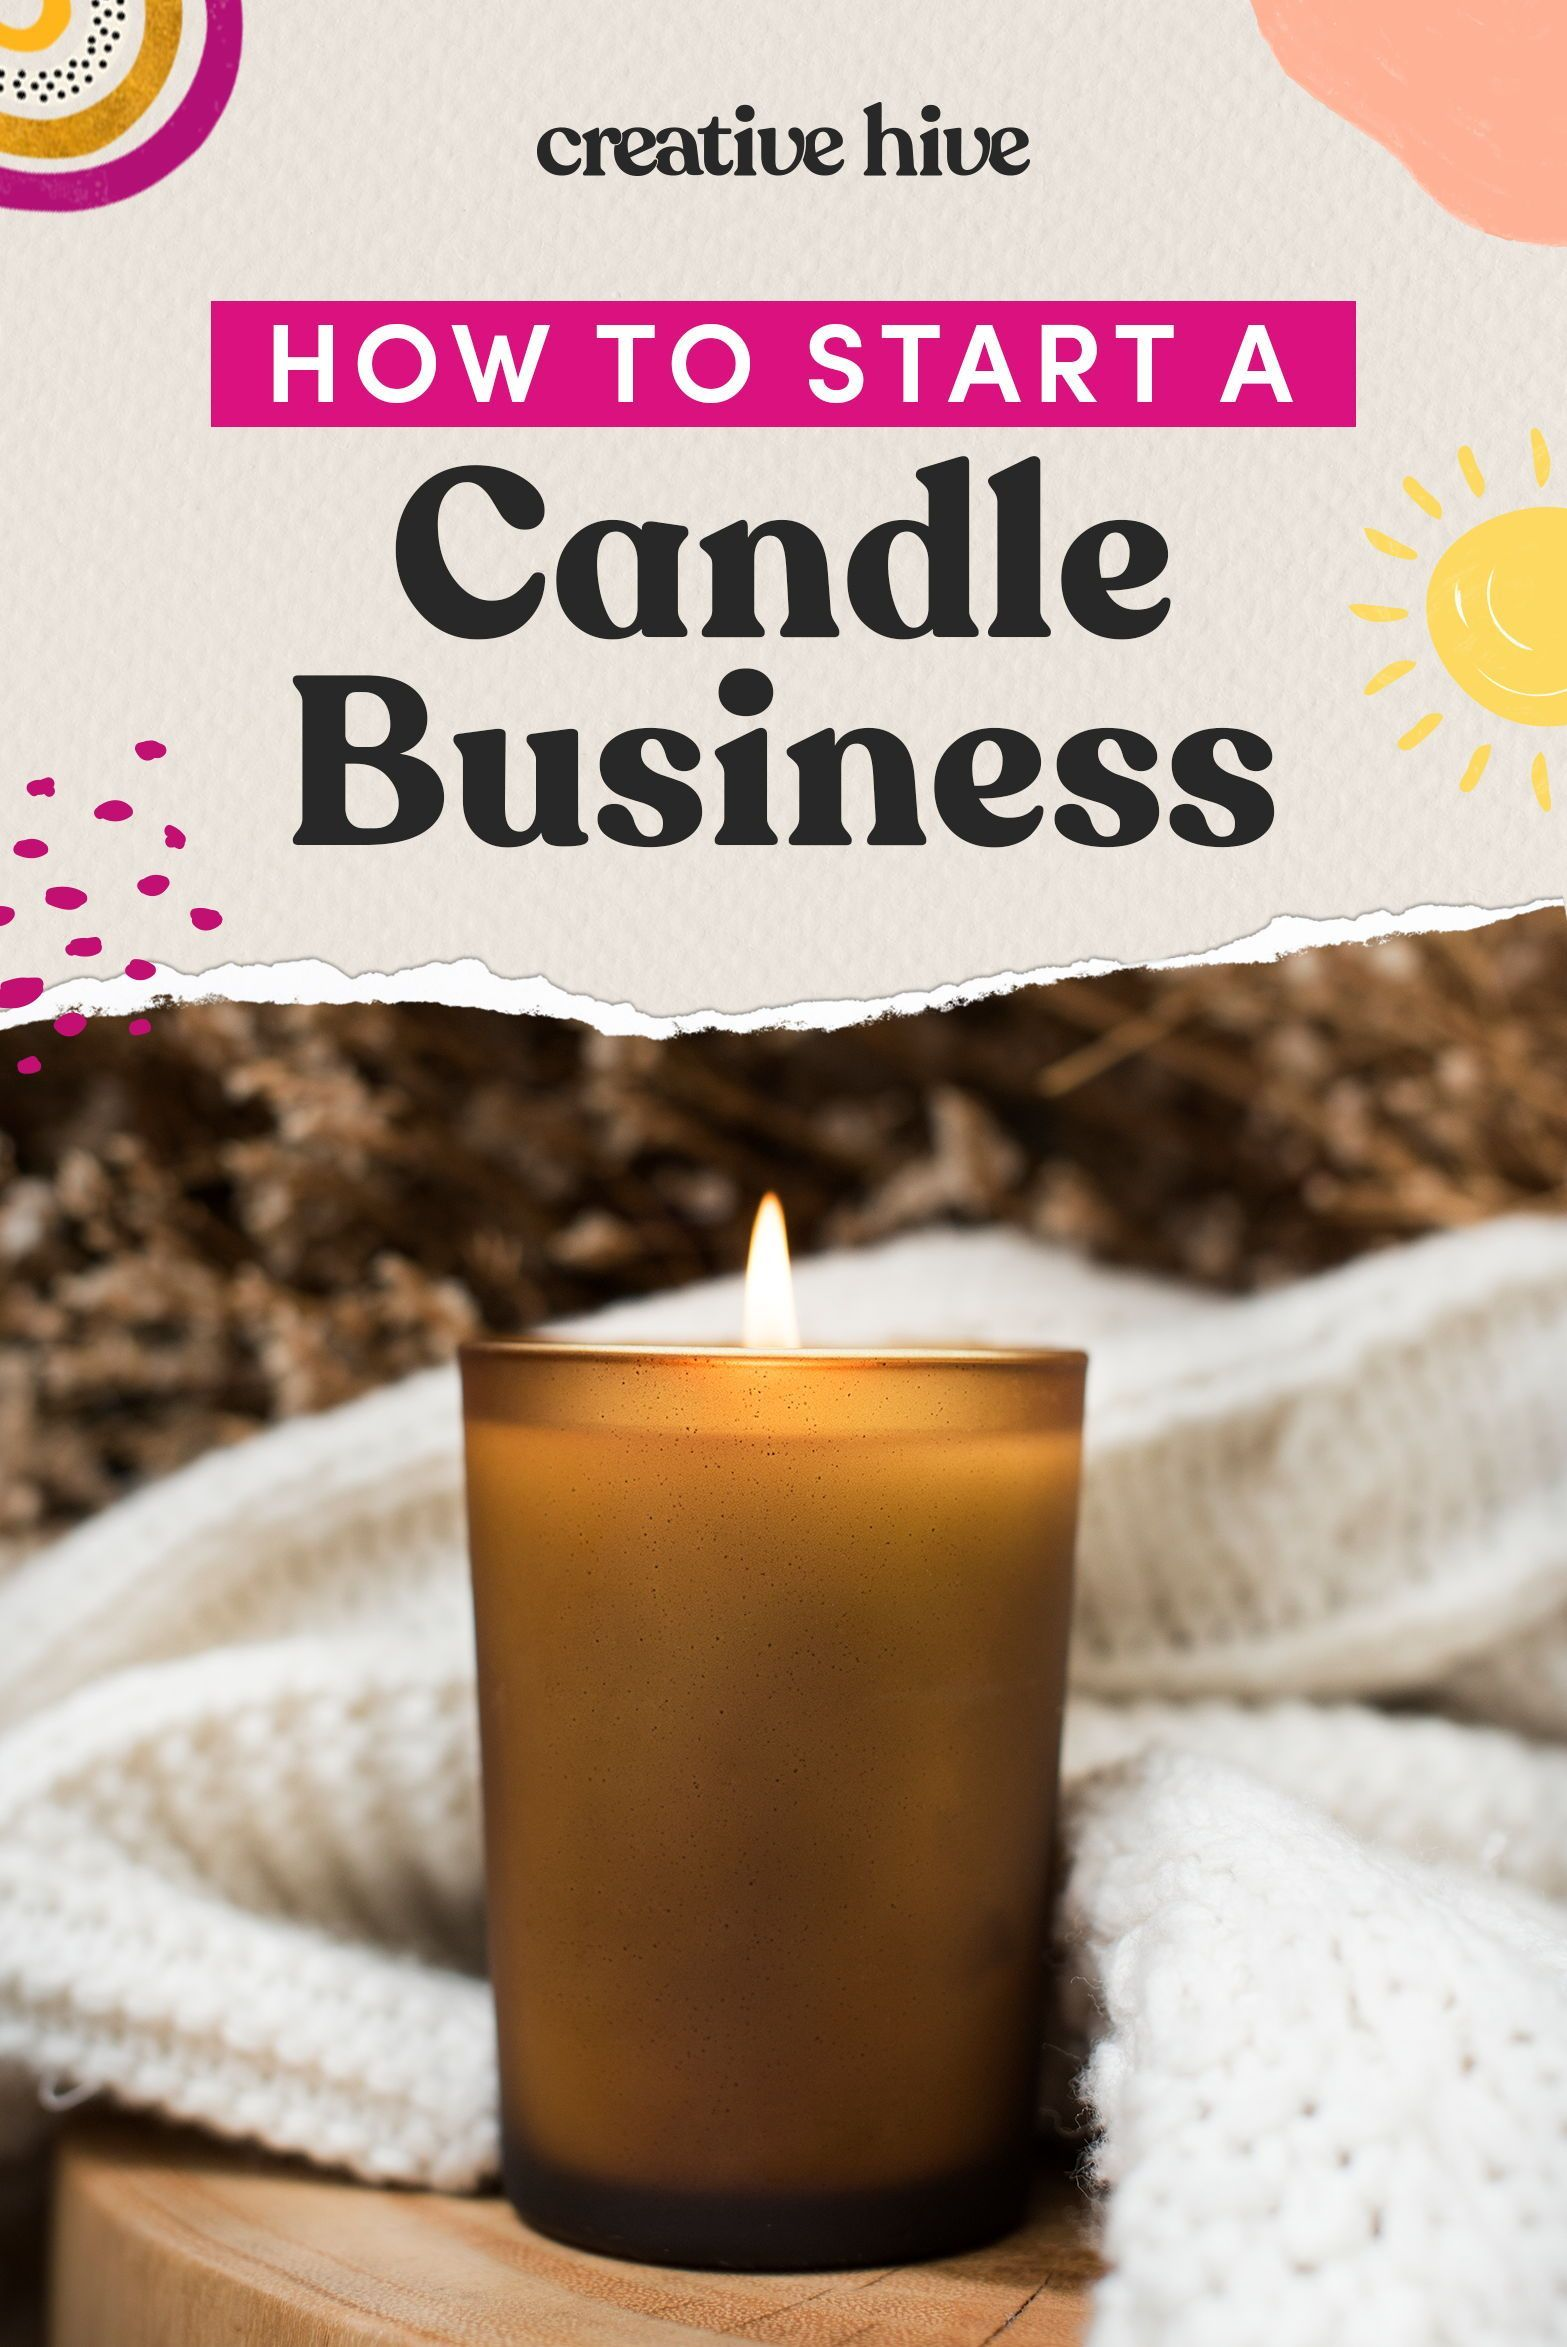 How To Start A Candle Business Candle Business Candle Making Business Candles